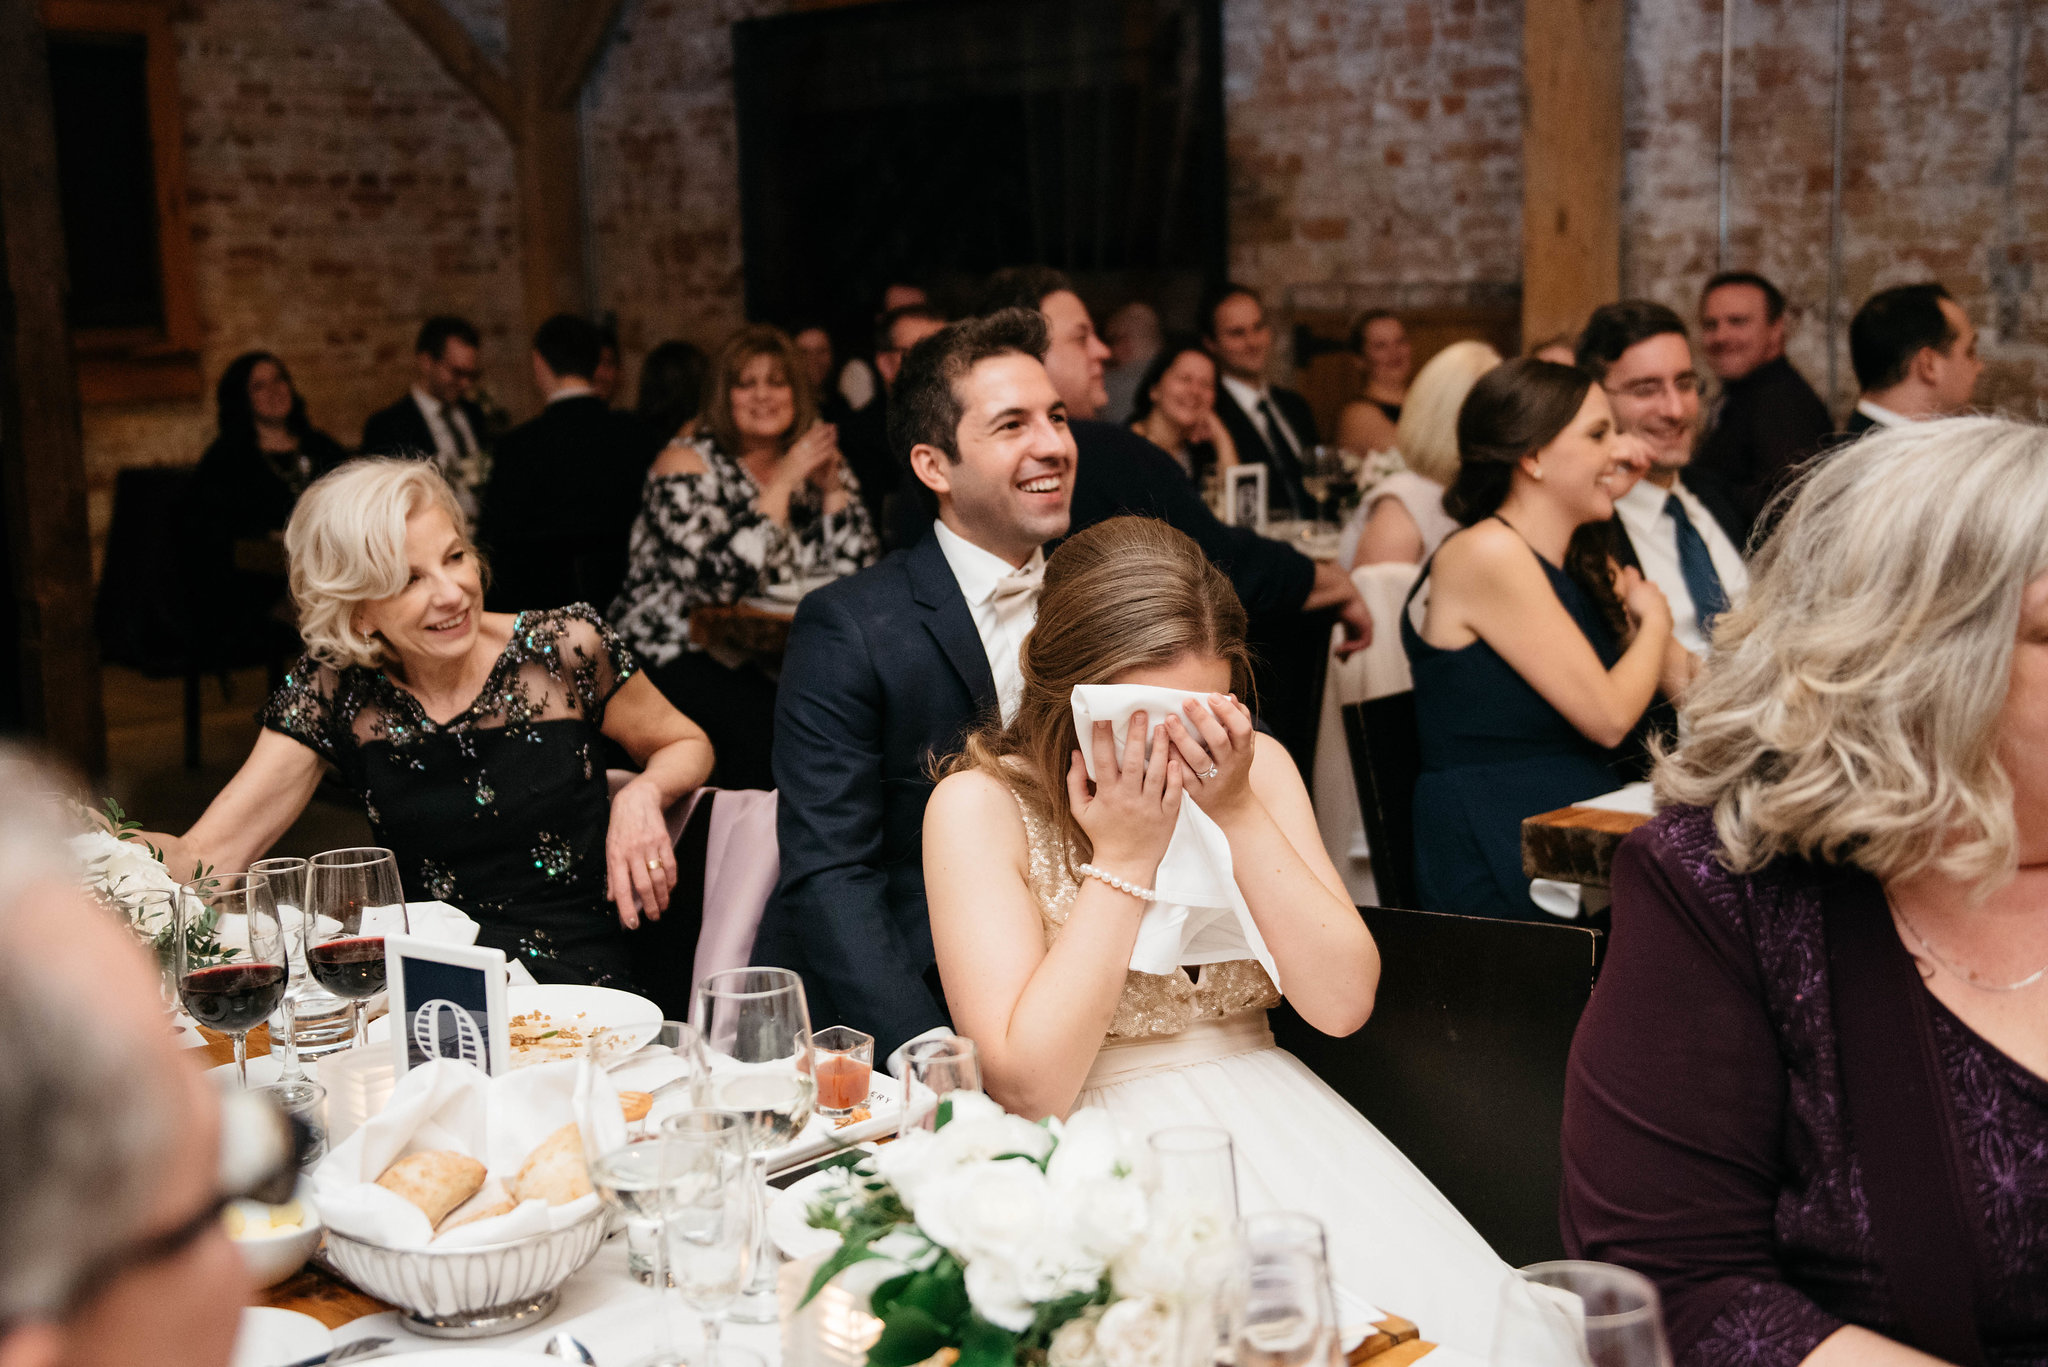 Candid wedding photographer Toronto - Olive Photography